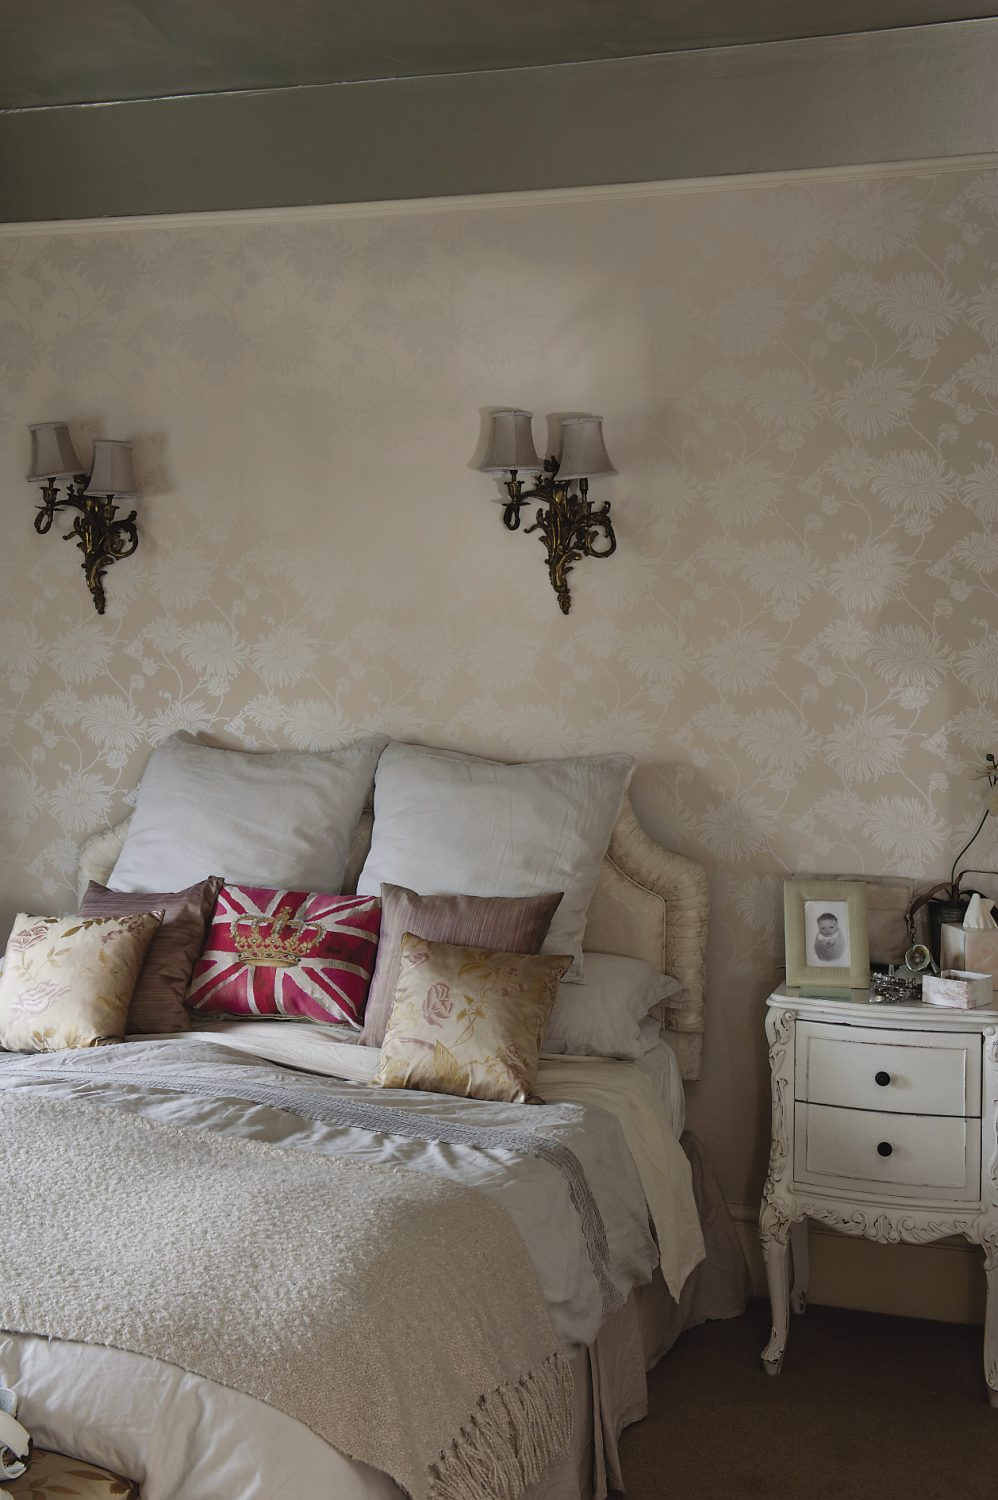 The chrysanthemum wallpaper has a subtle pearlised sheen that is echoed by the silver wash used on the ceiling. The bedlinen is a mix of fine linen and silk but in the centre of the bed is a Union Jack cushion with a crown in the centre